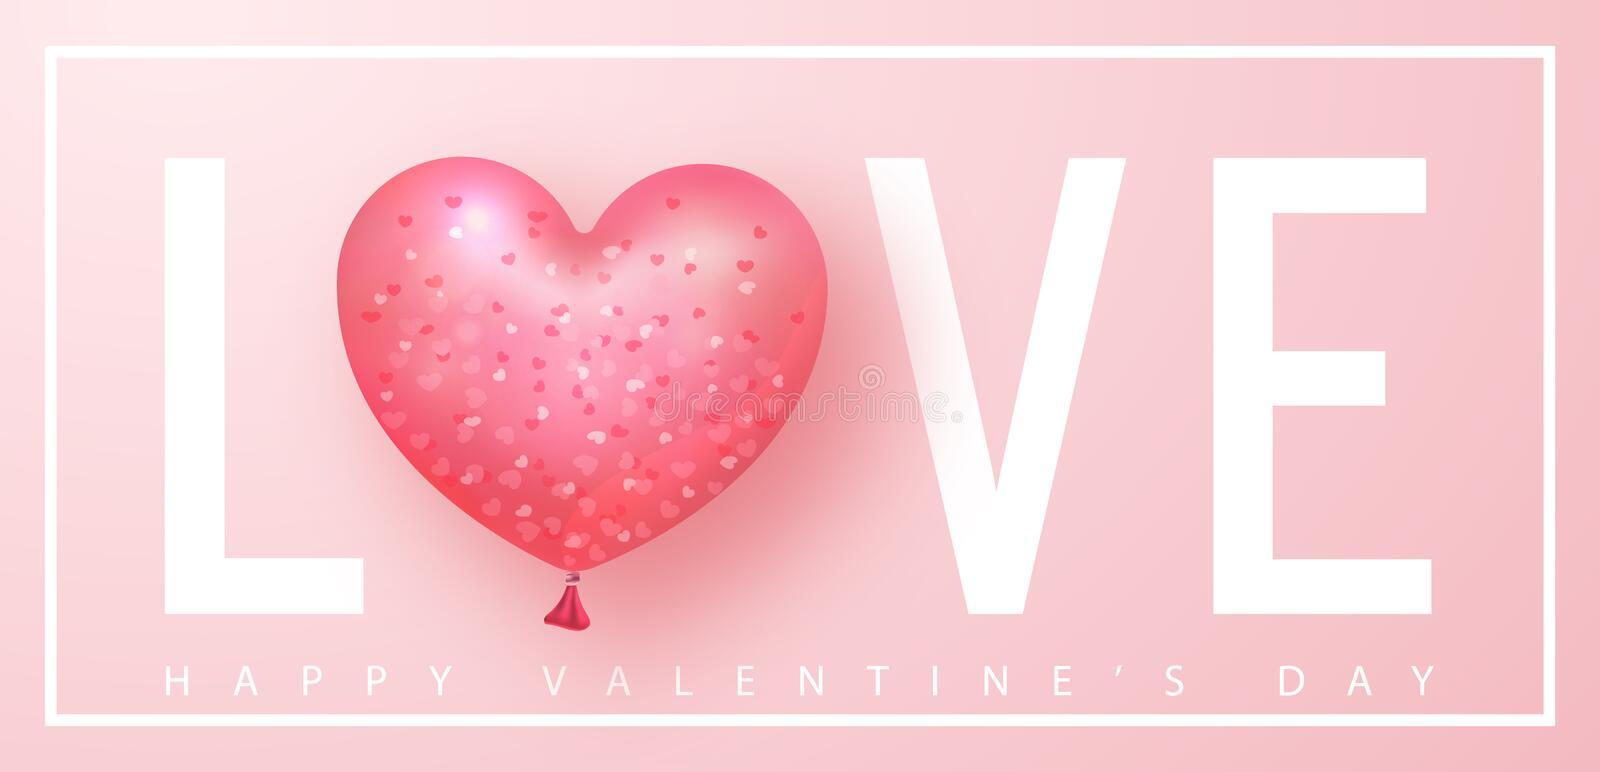 Happy Valentines day banner. Beautiful Background with heart shaped air balloon. Vector illustration for website. Posters, email and newsletter designs, ads vector illustration